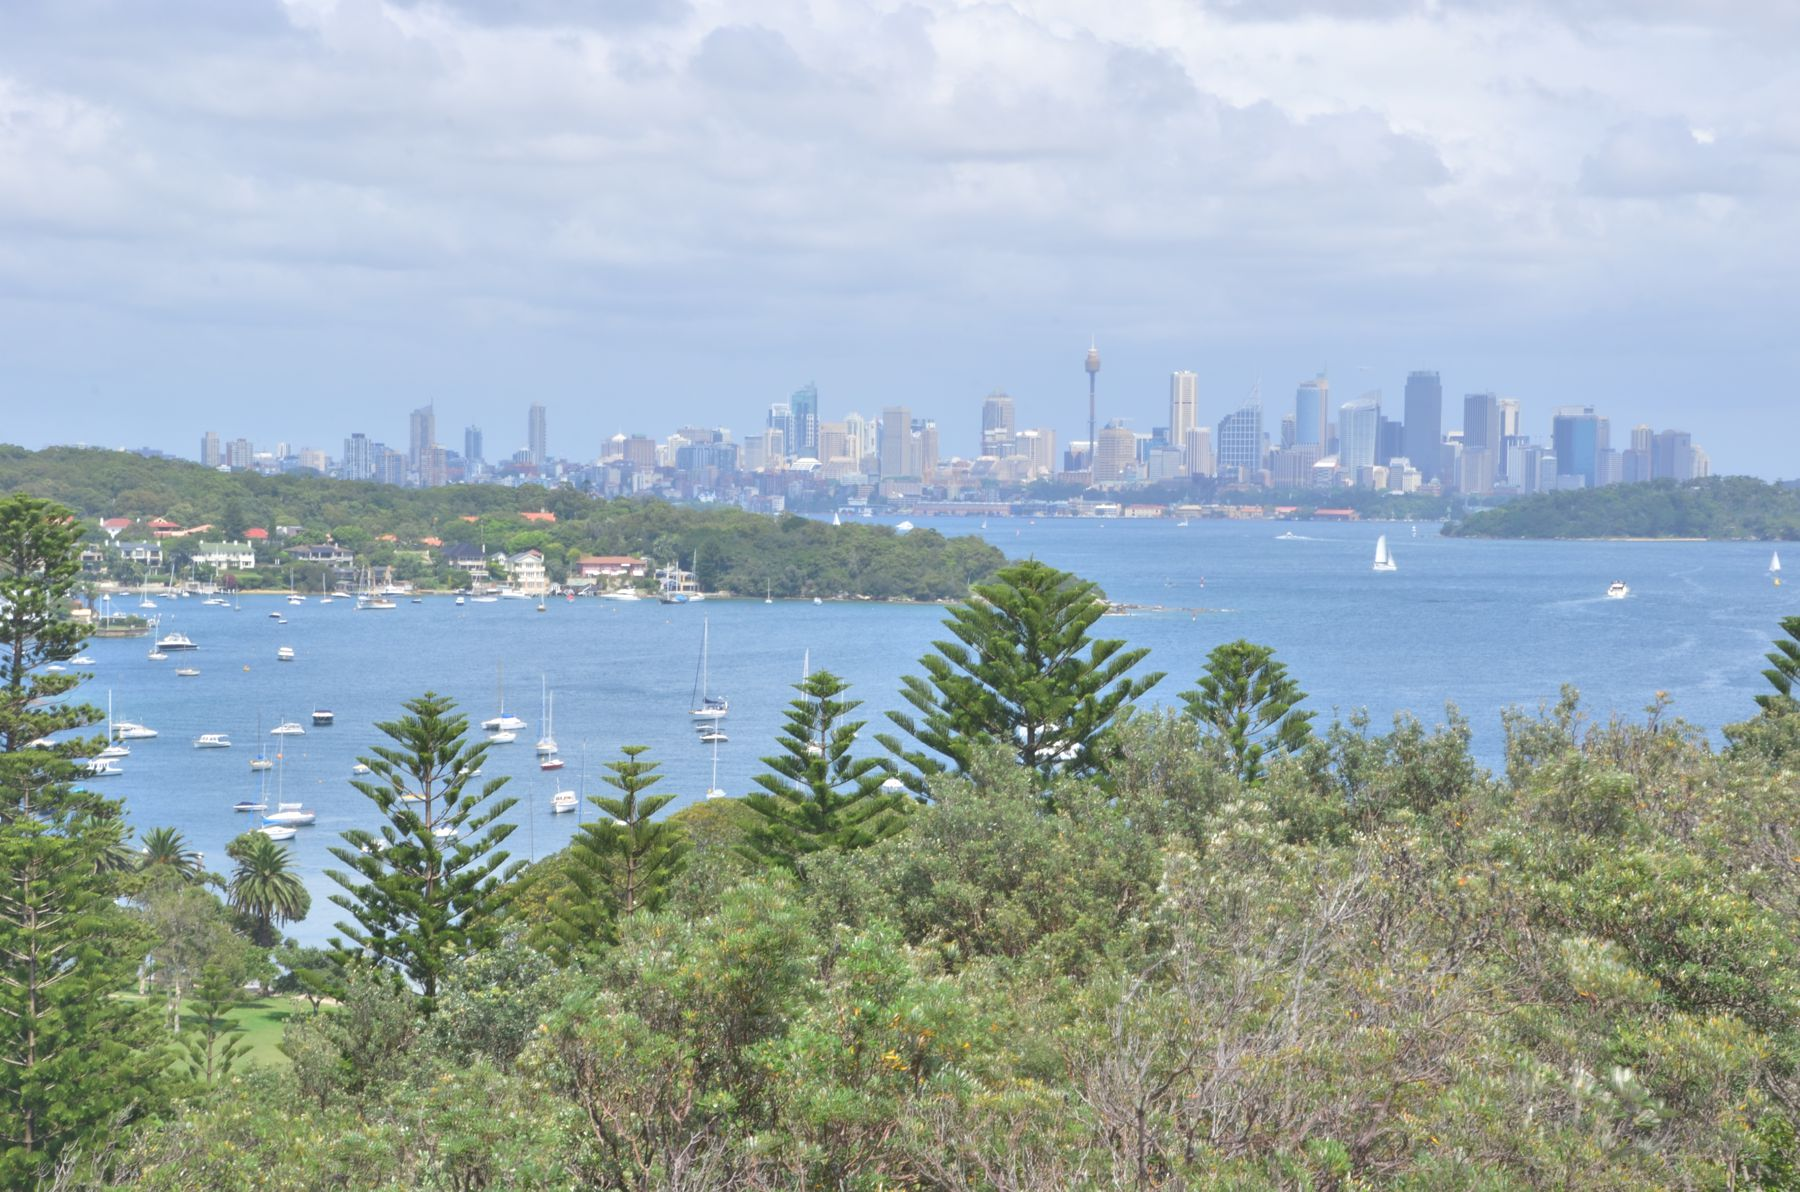 Sydney as seen from Watsons Bay